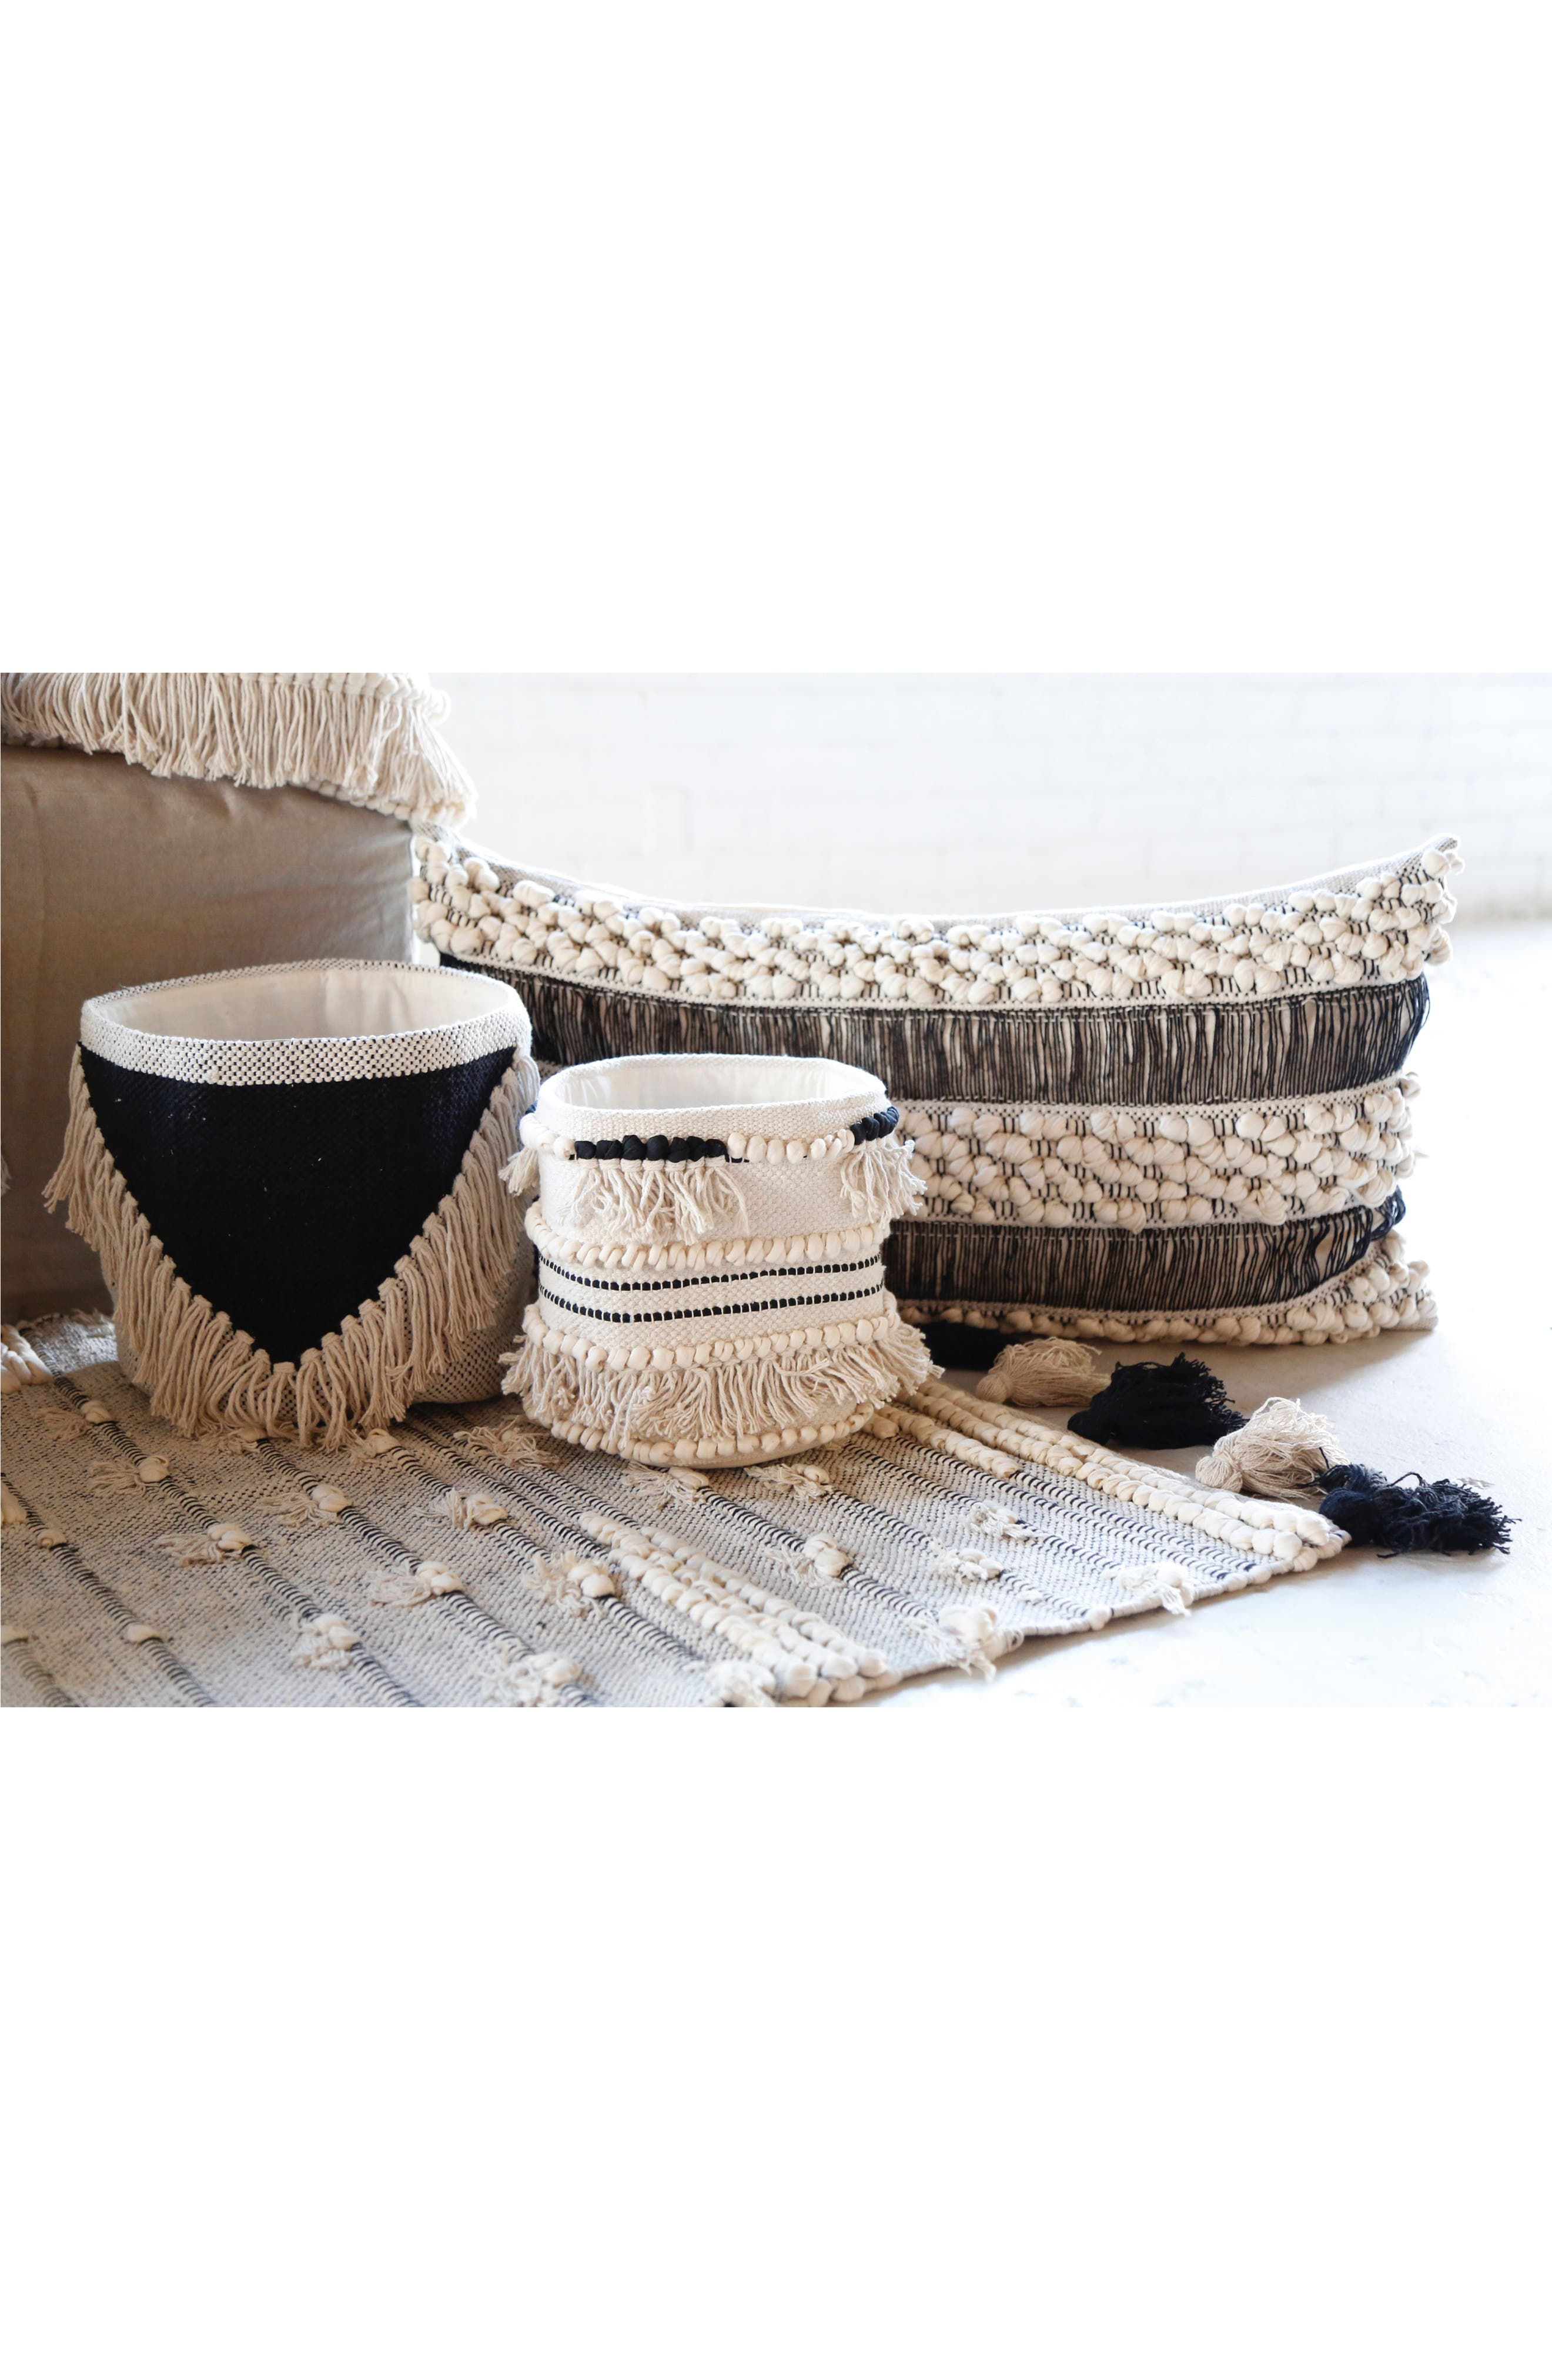 Alternate Image 2  - Pom Pom at Home Set of Two Woven Baskets